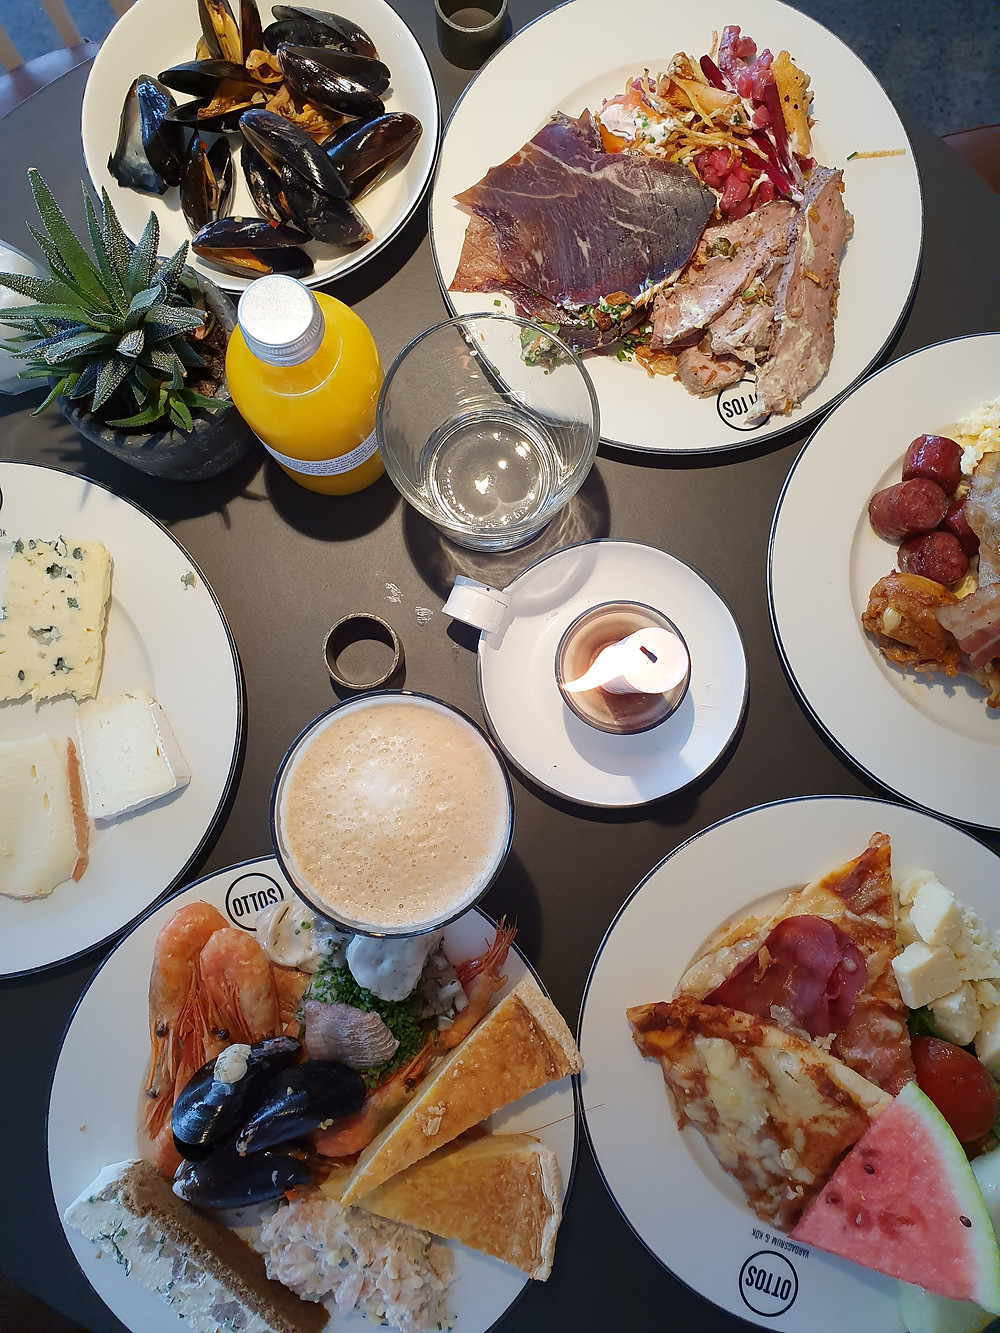 Brunch at Marstrand Havshotell, Marstrand in Sweden.